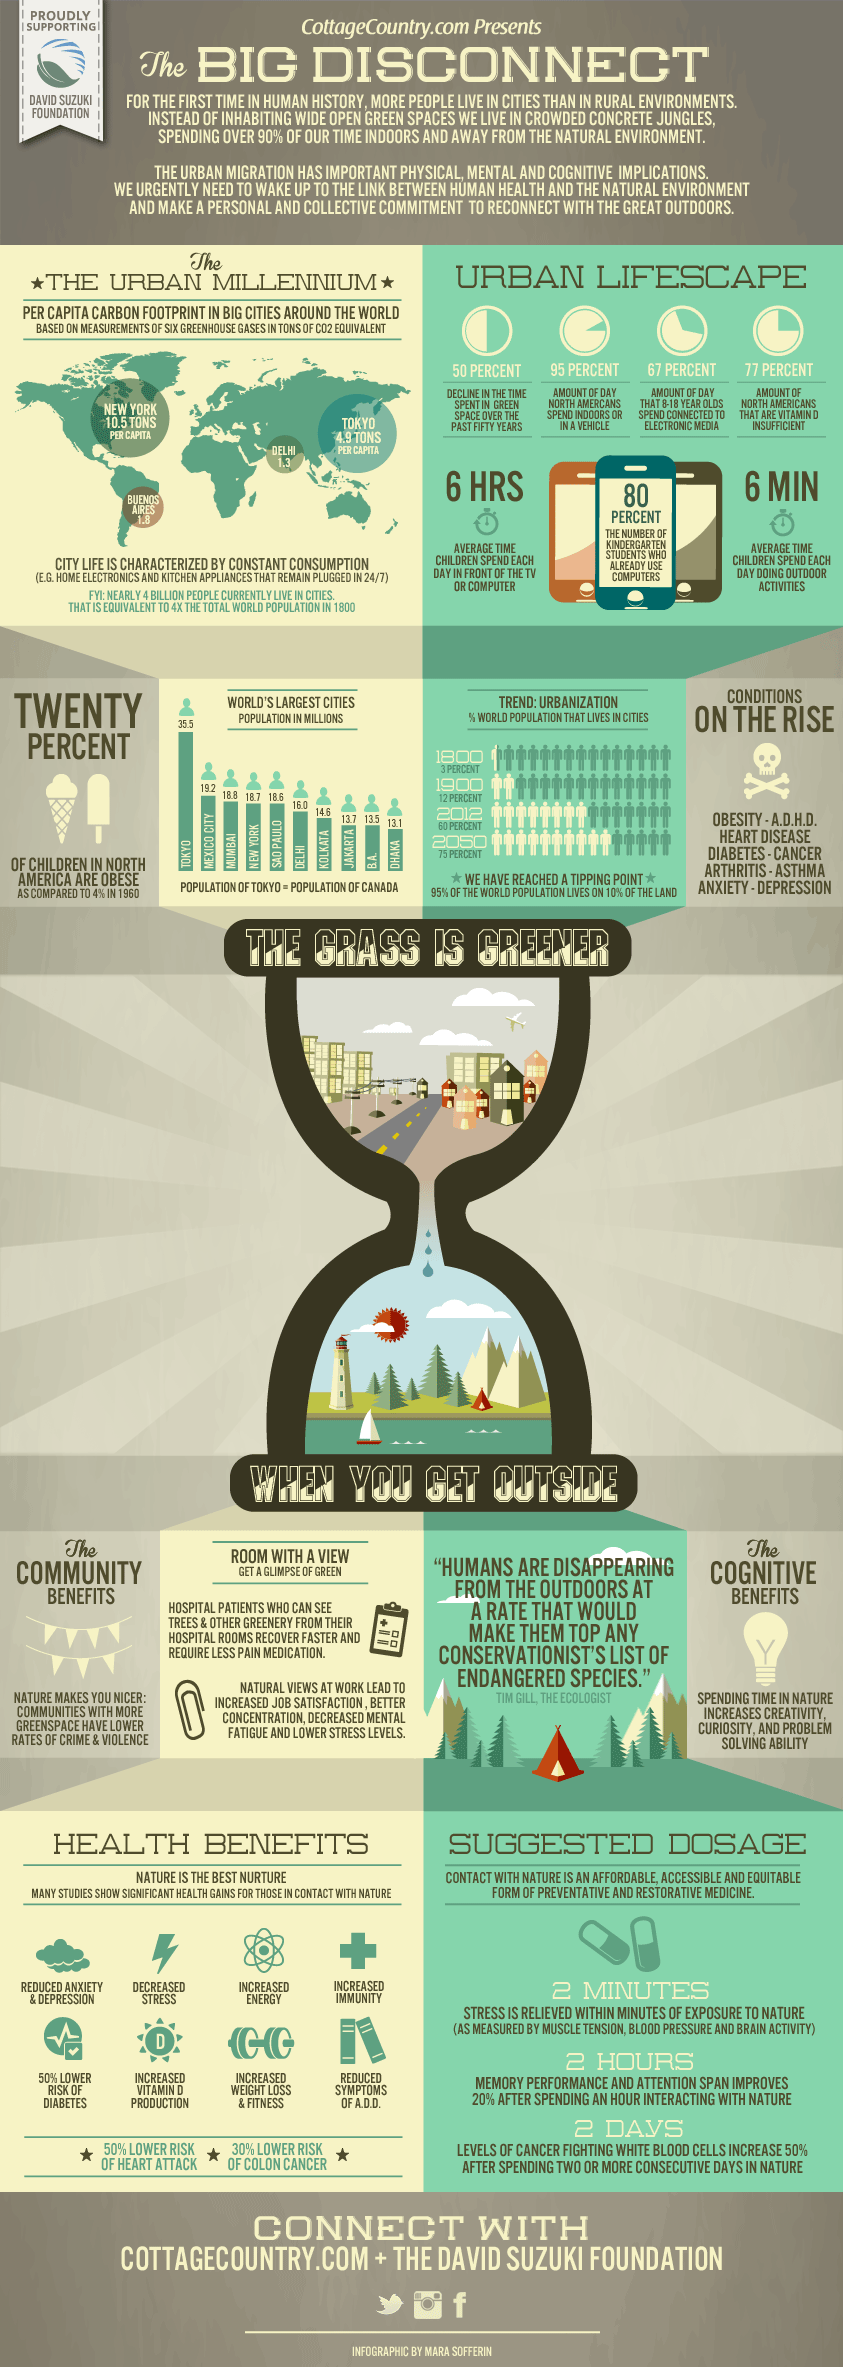 get-outside-infographic-cottagecountry